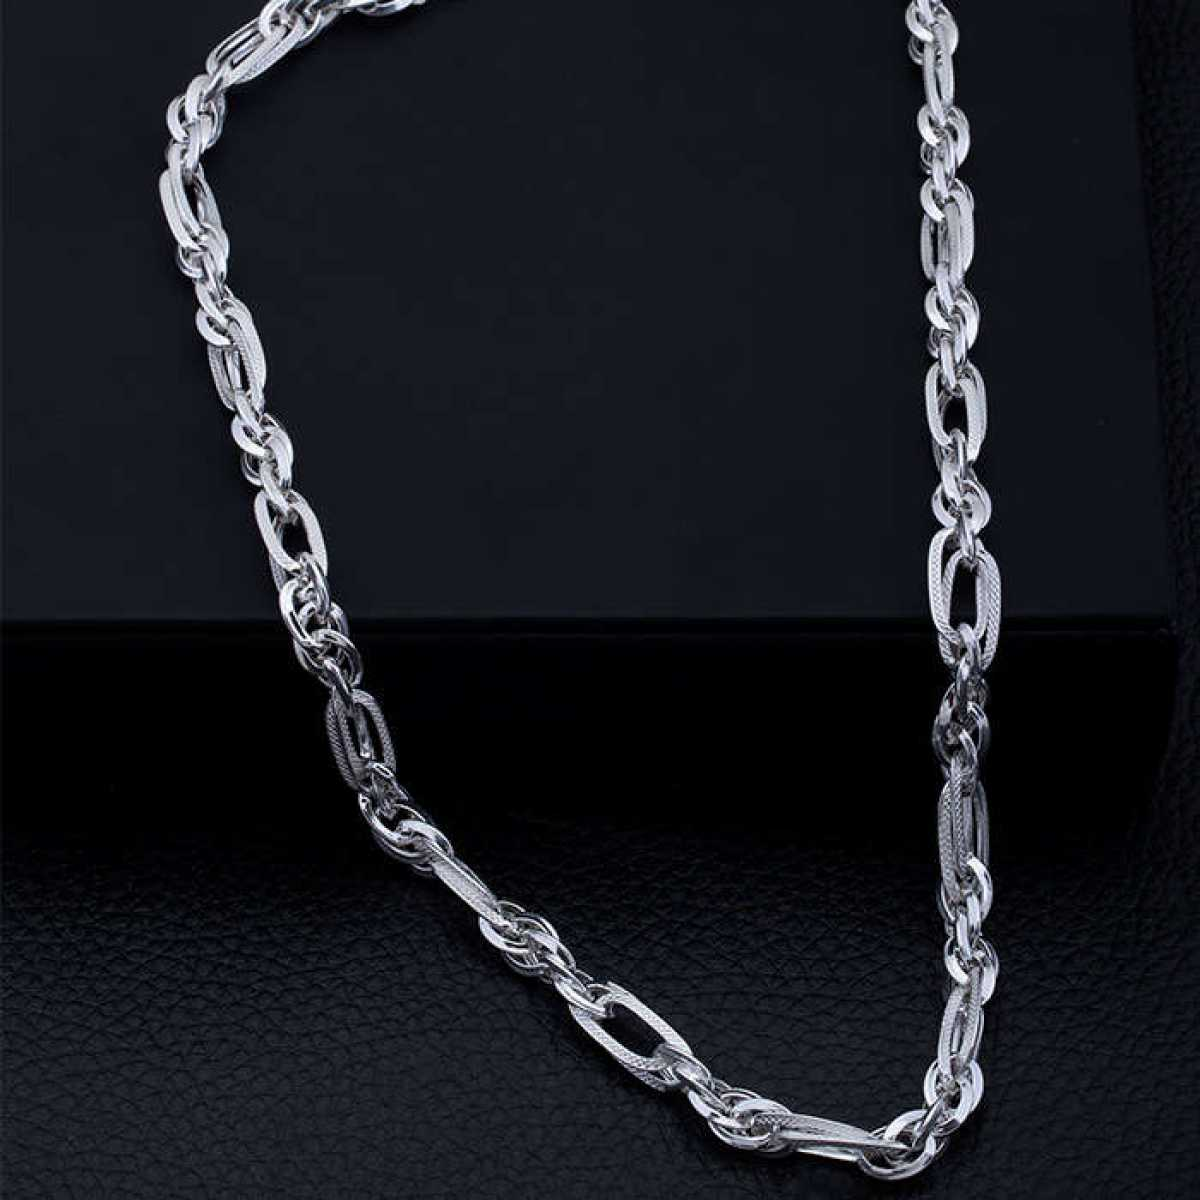 Trendy New Design Silver Chain for Men